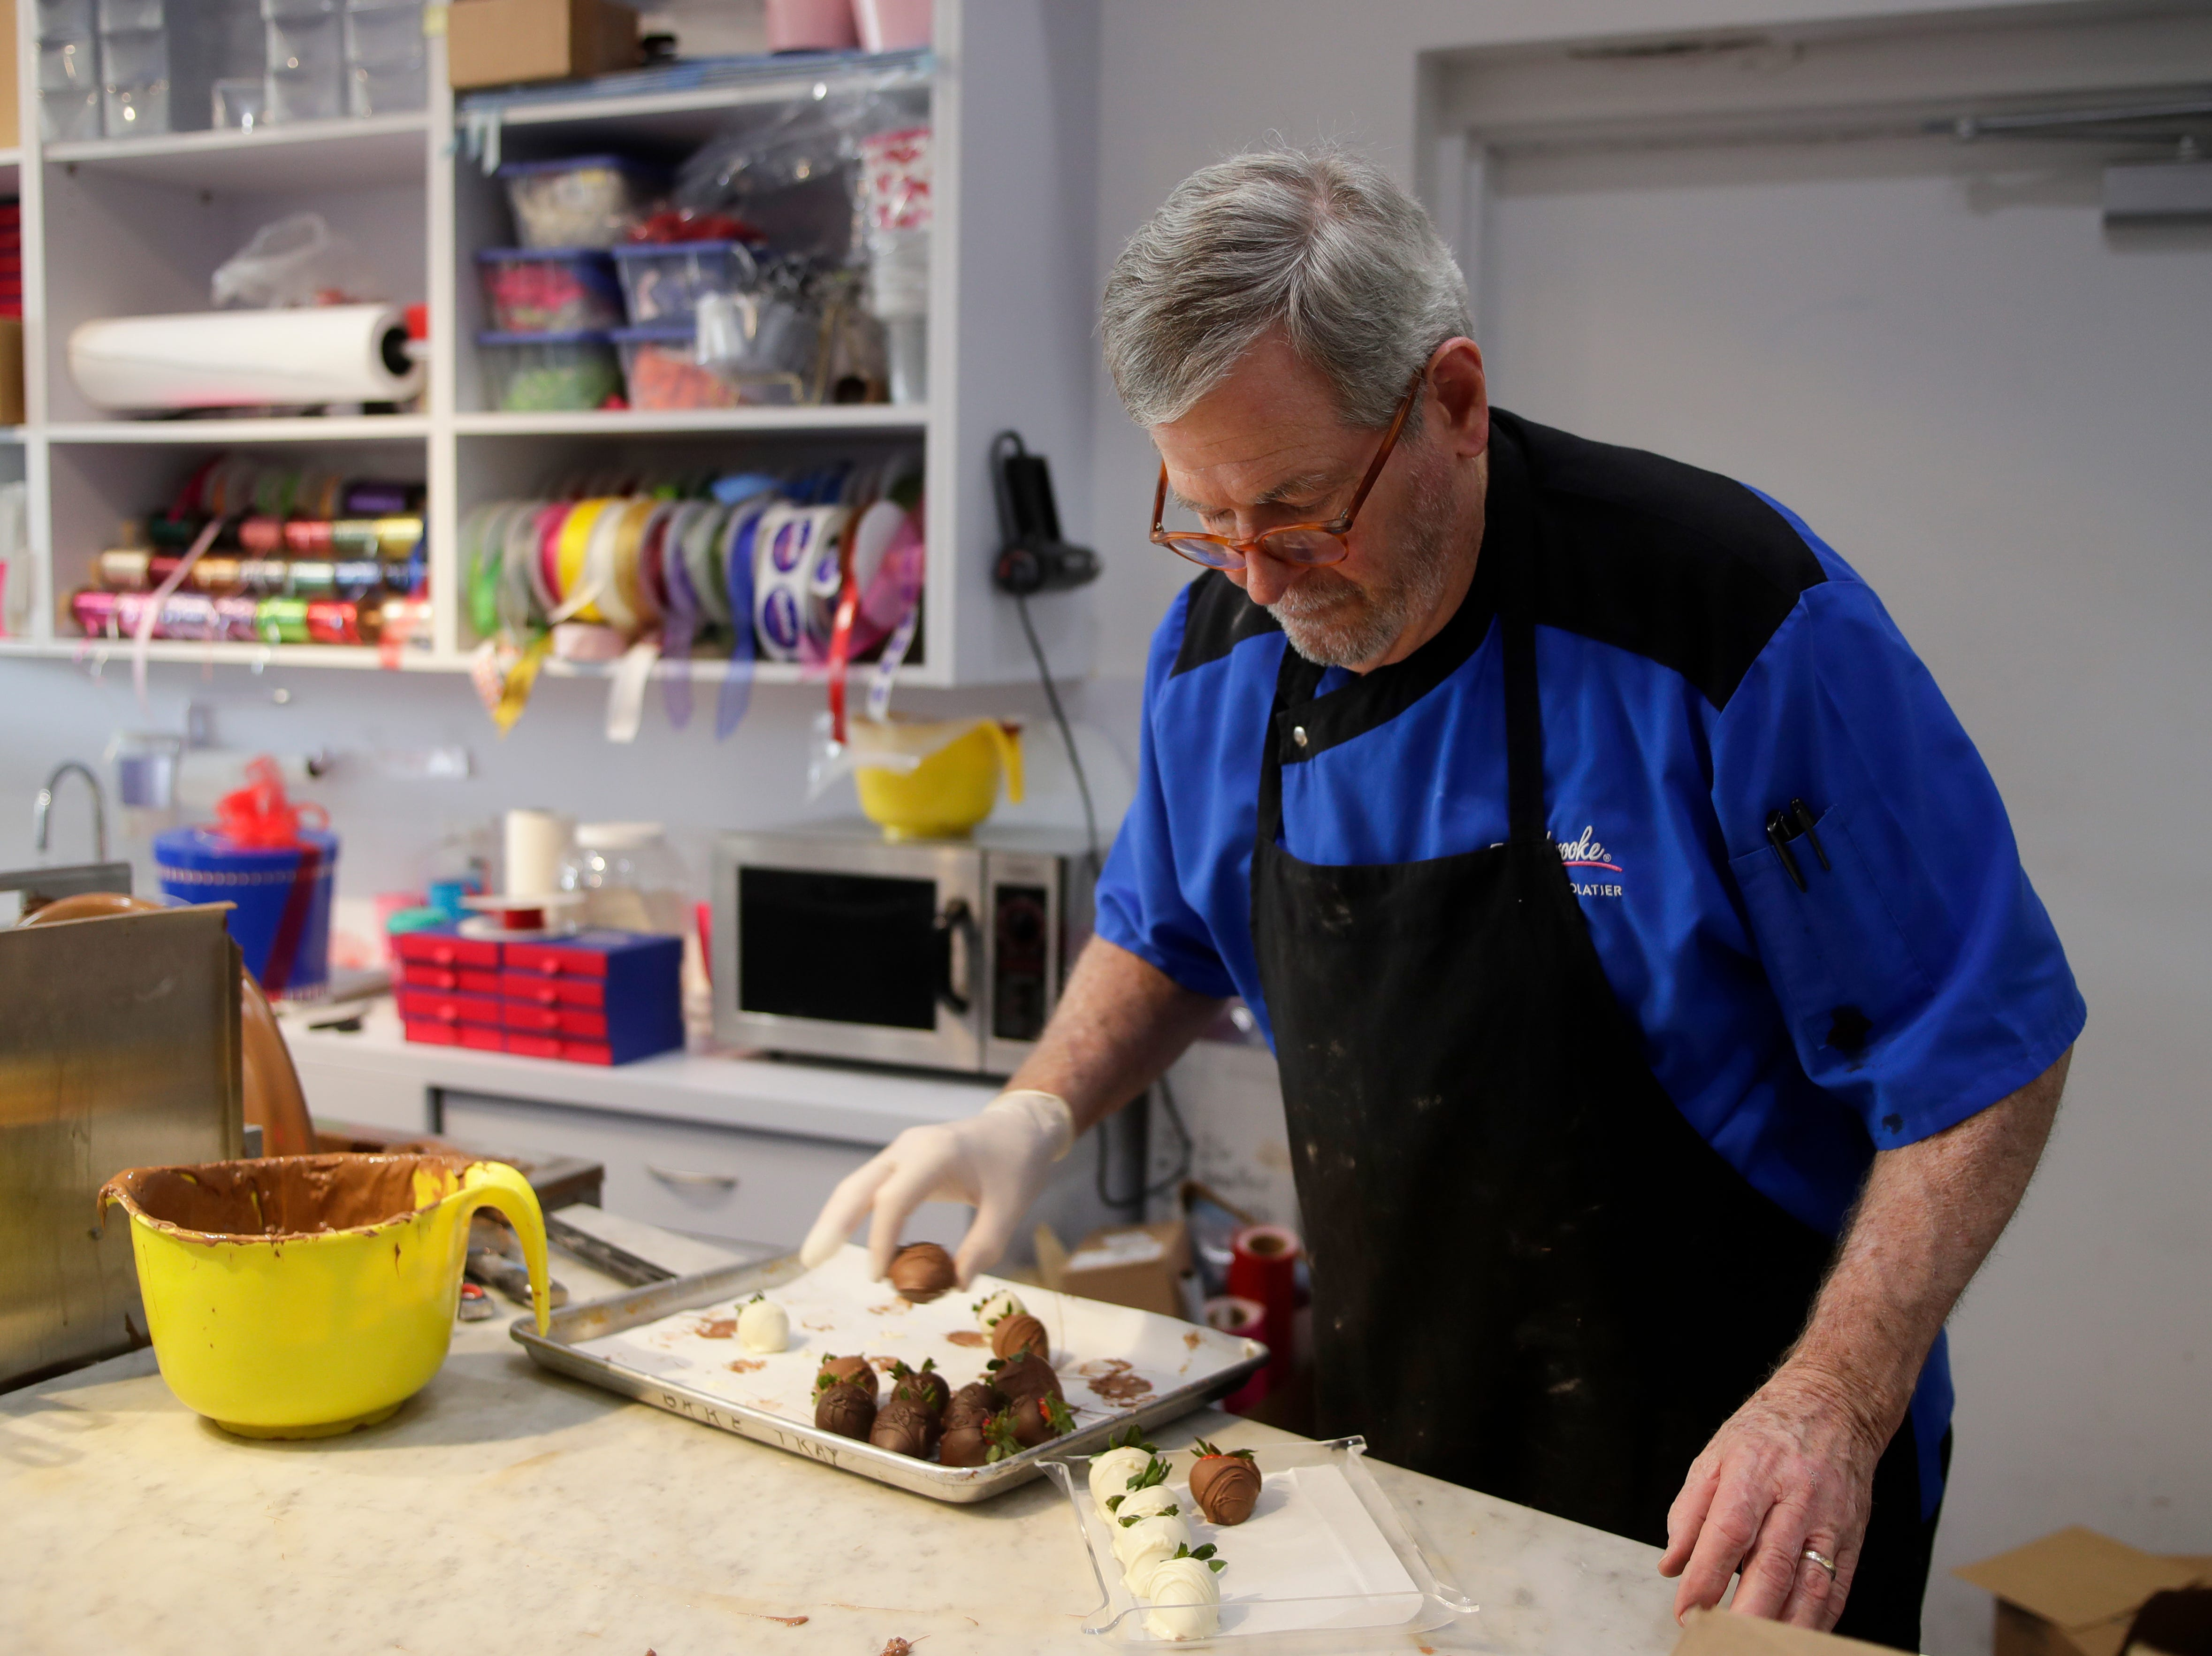 Richard Herbert, manager of Peterbrooke Chocoaltier, prepares chocolate covered strawberries to be sold at the store Sunday, Feb. 10, 2019. The Tallahassee Peterbrooke location will sell between 3,500 and 4,000 chocolate covered strawberries on Valentine's Day.